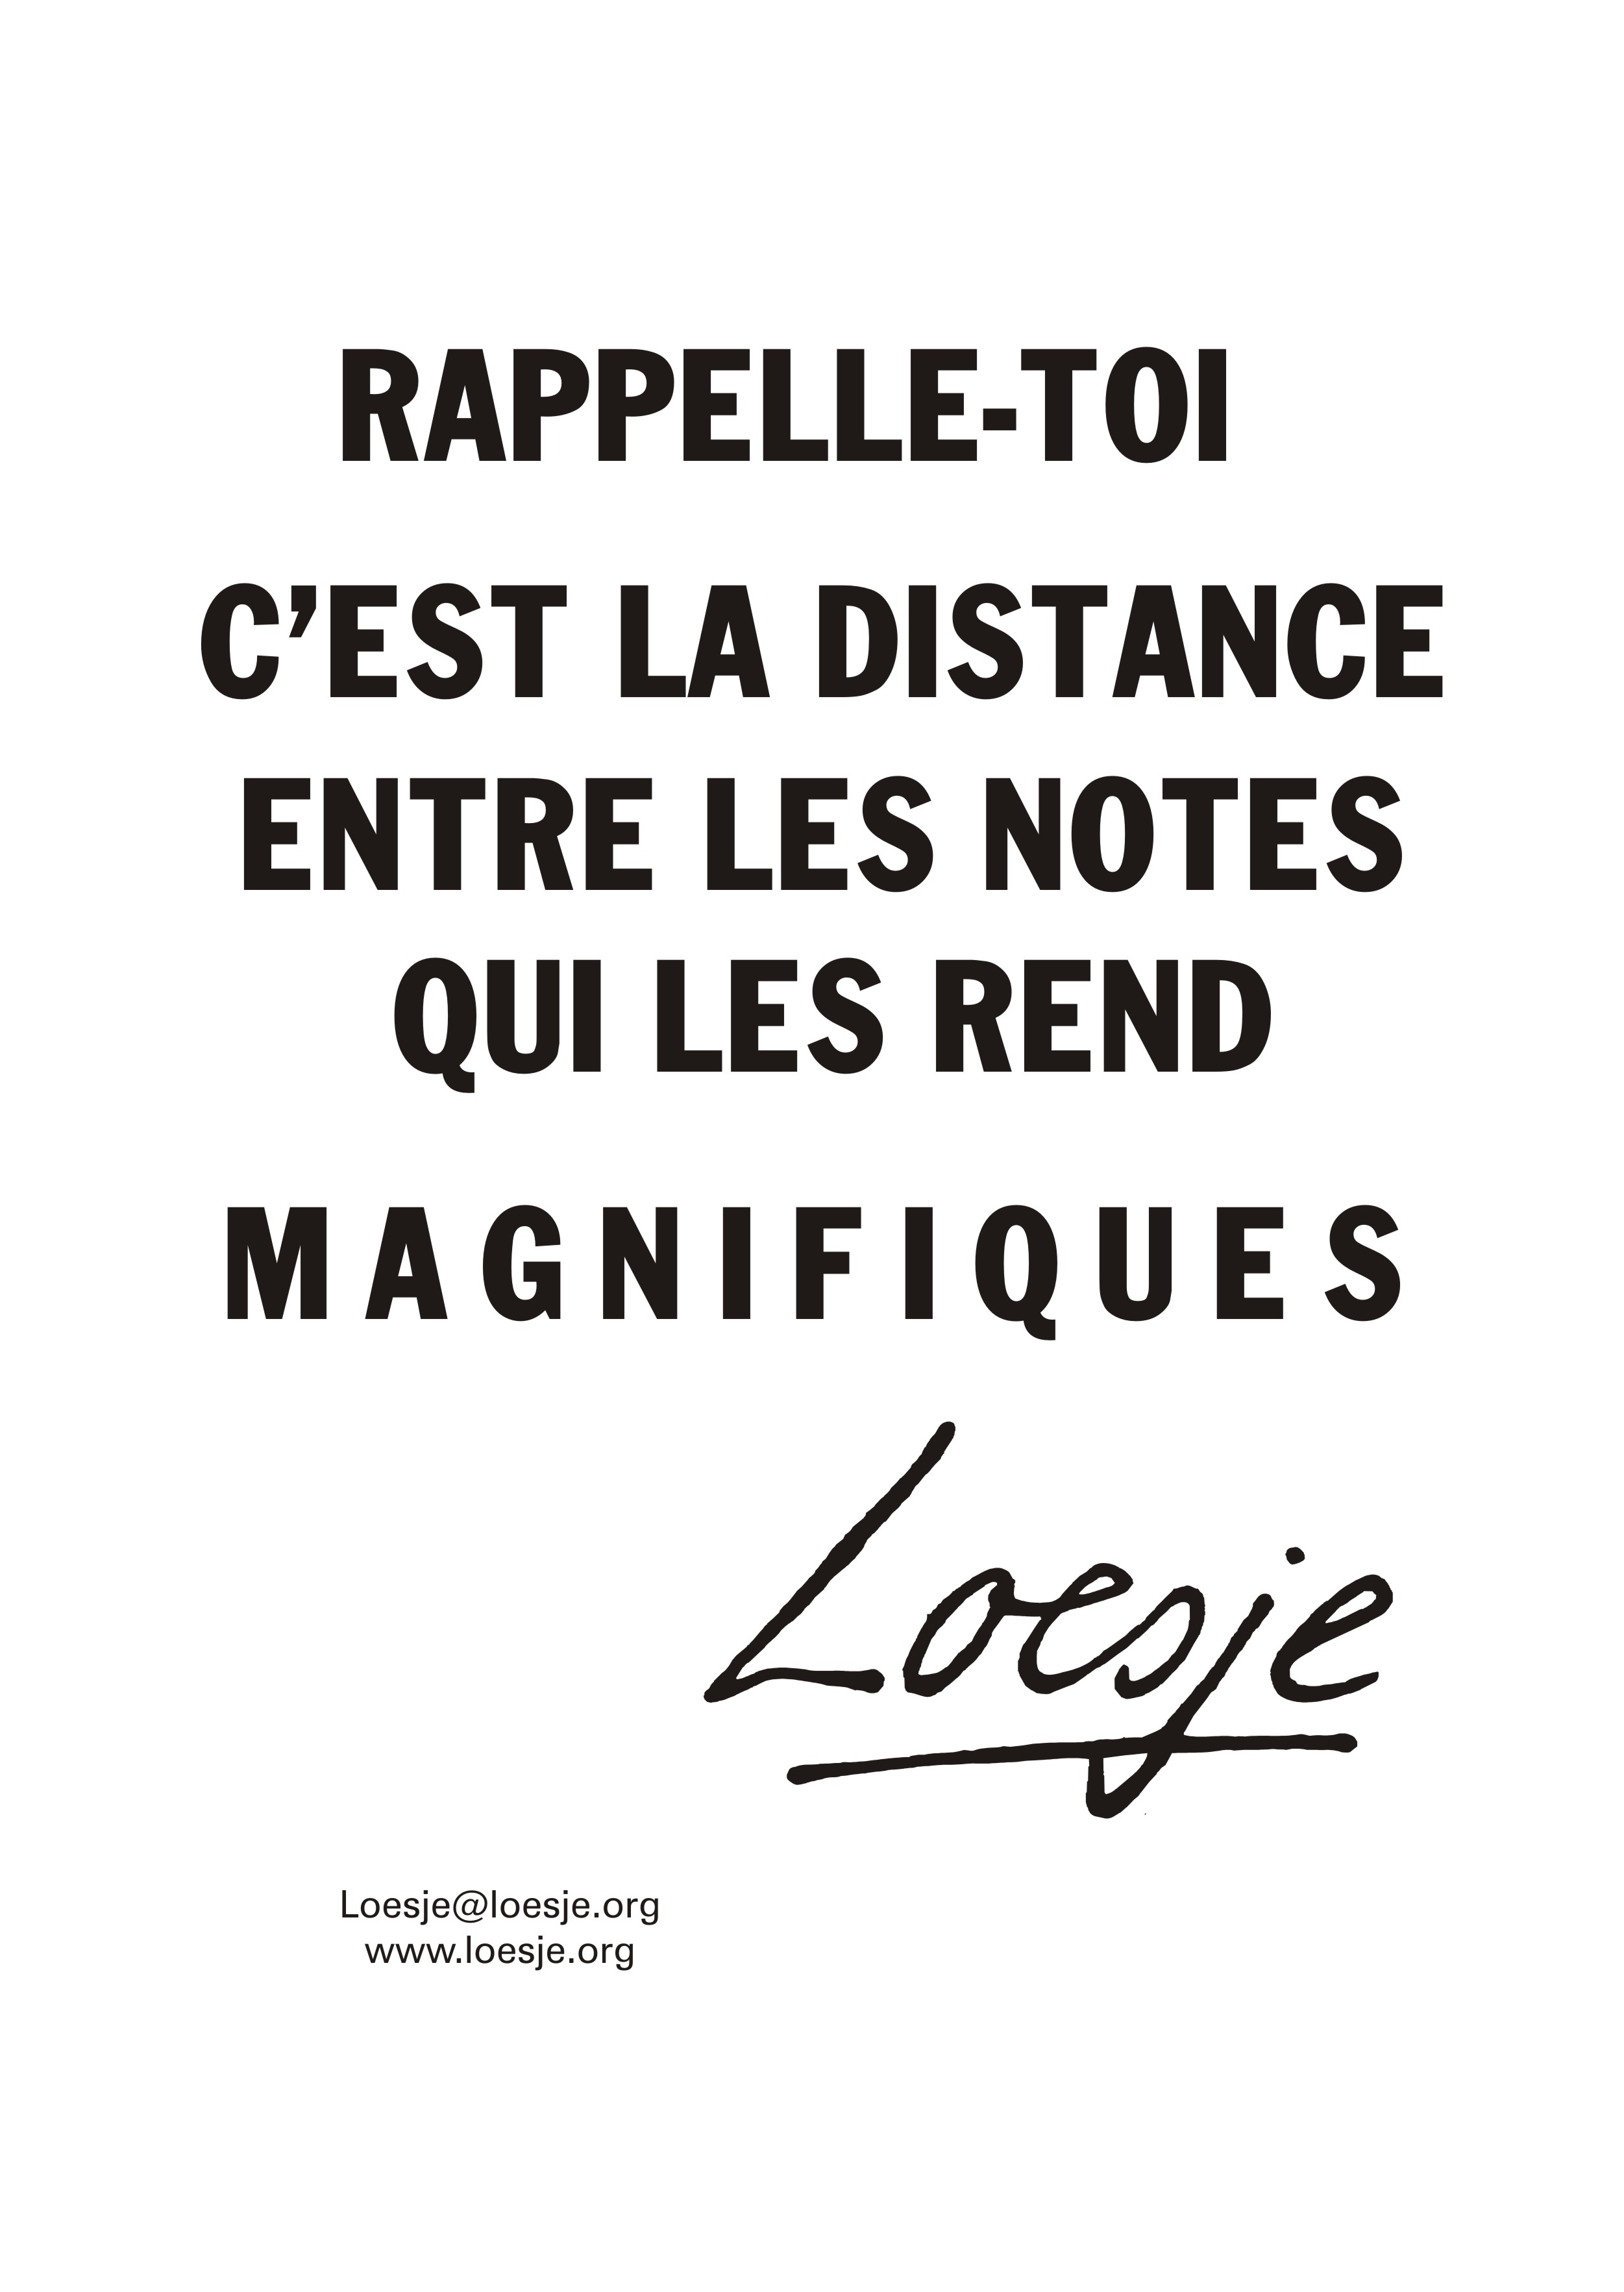 Rapelle toi, la distance entre les notes qui es end magnifique